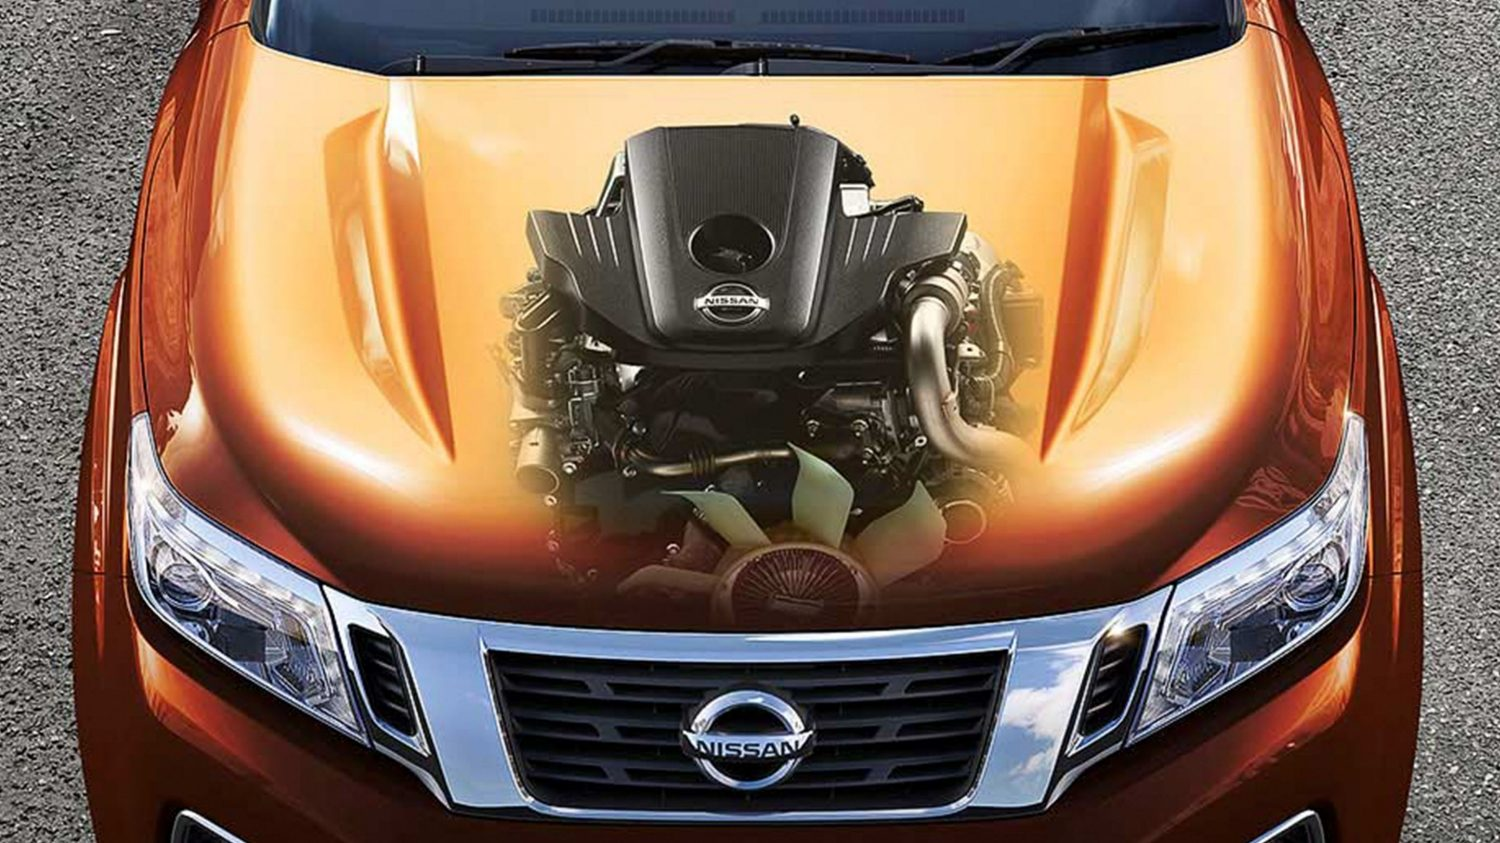 Navara | Nissan | Pick up truck engine